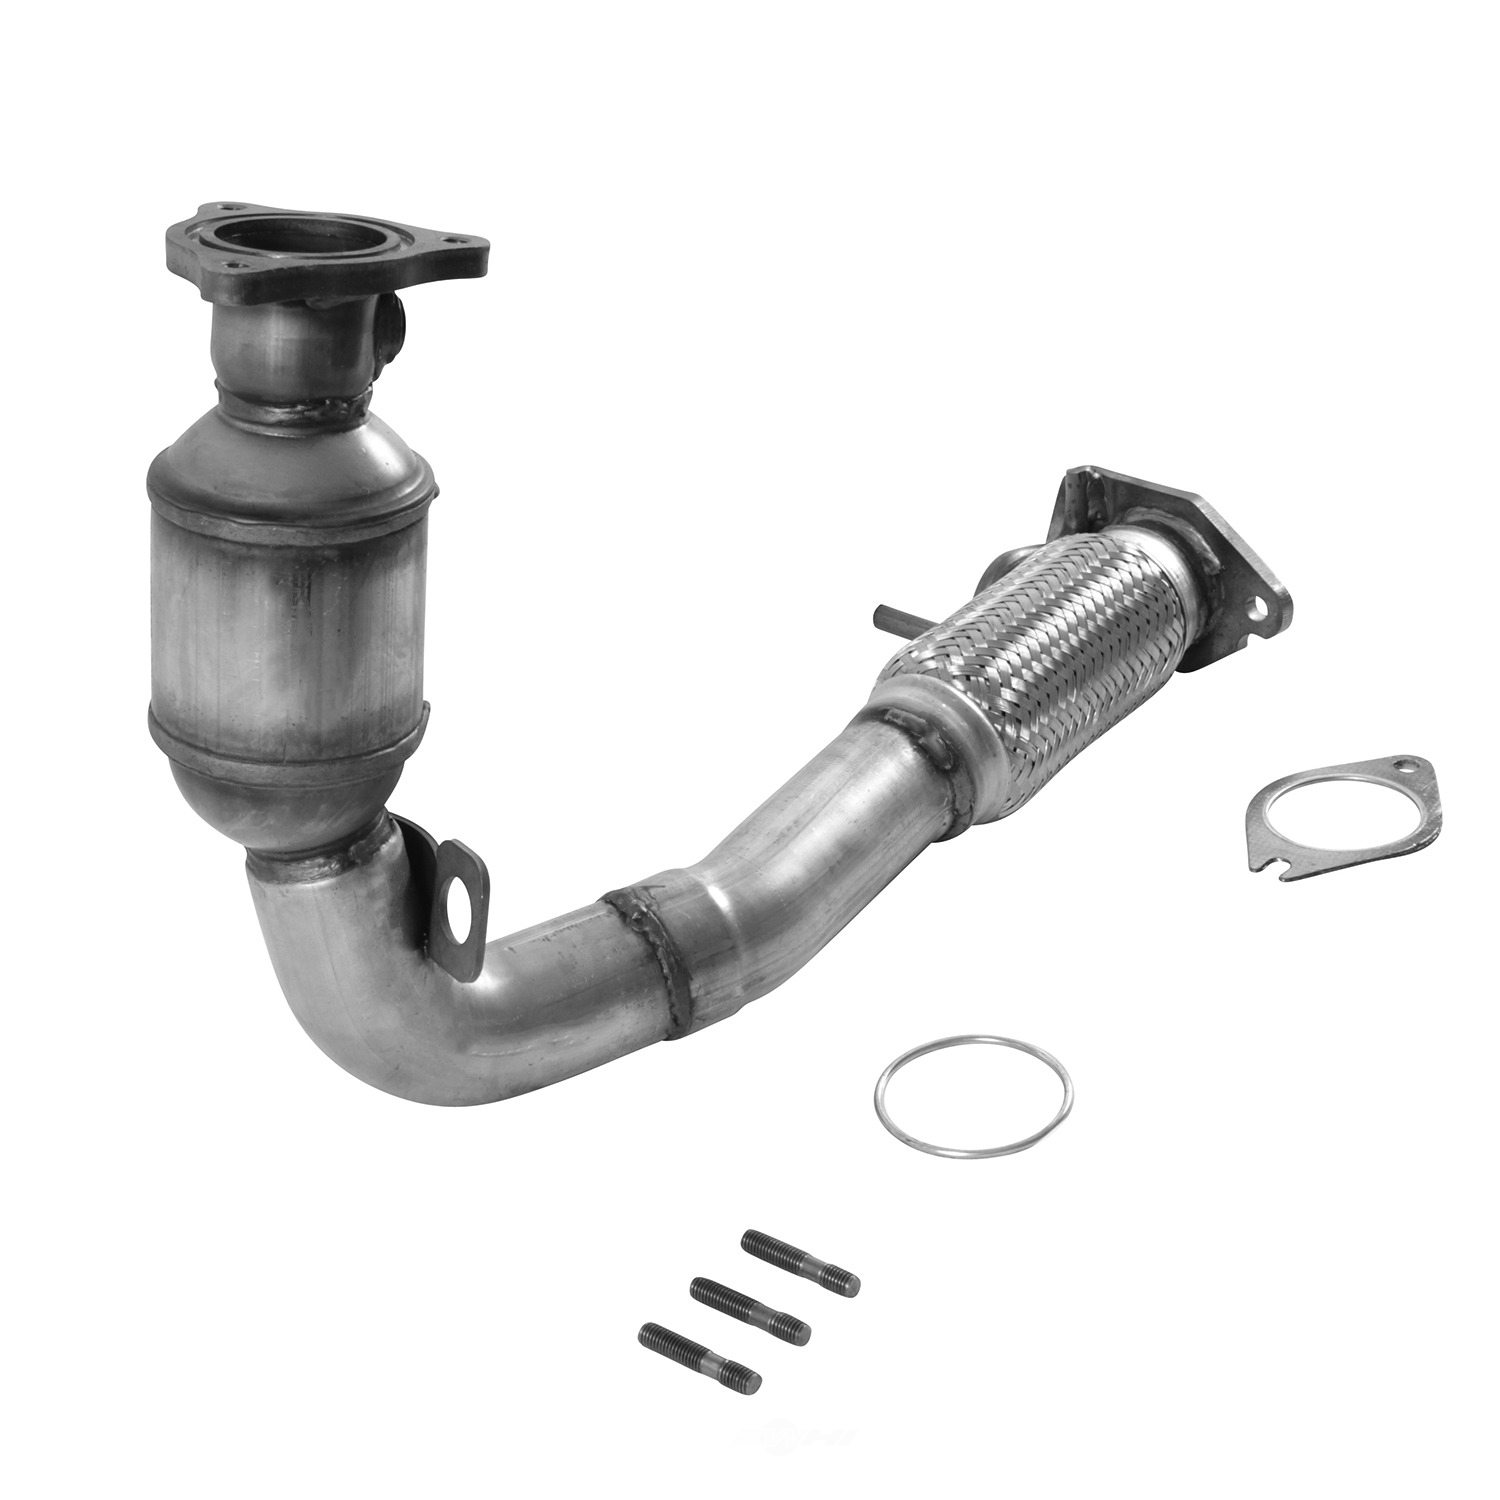 AP EXHAUST W/FEDERAL CONVERTER - Catalytic Converter (Front) - APF 644066